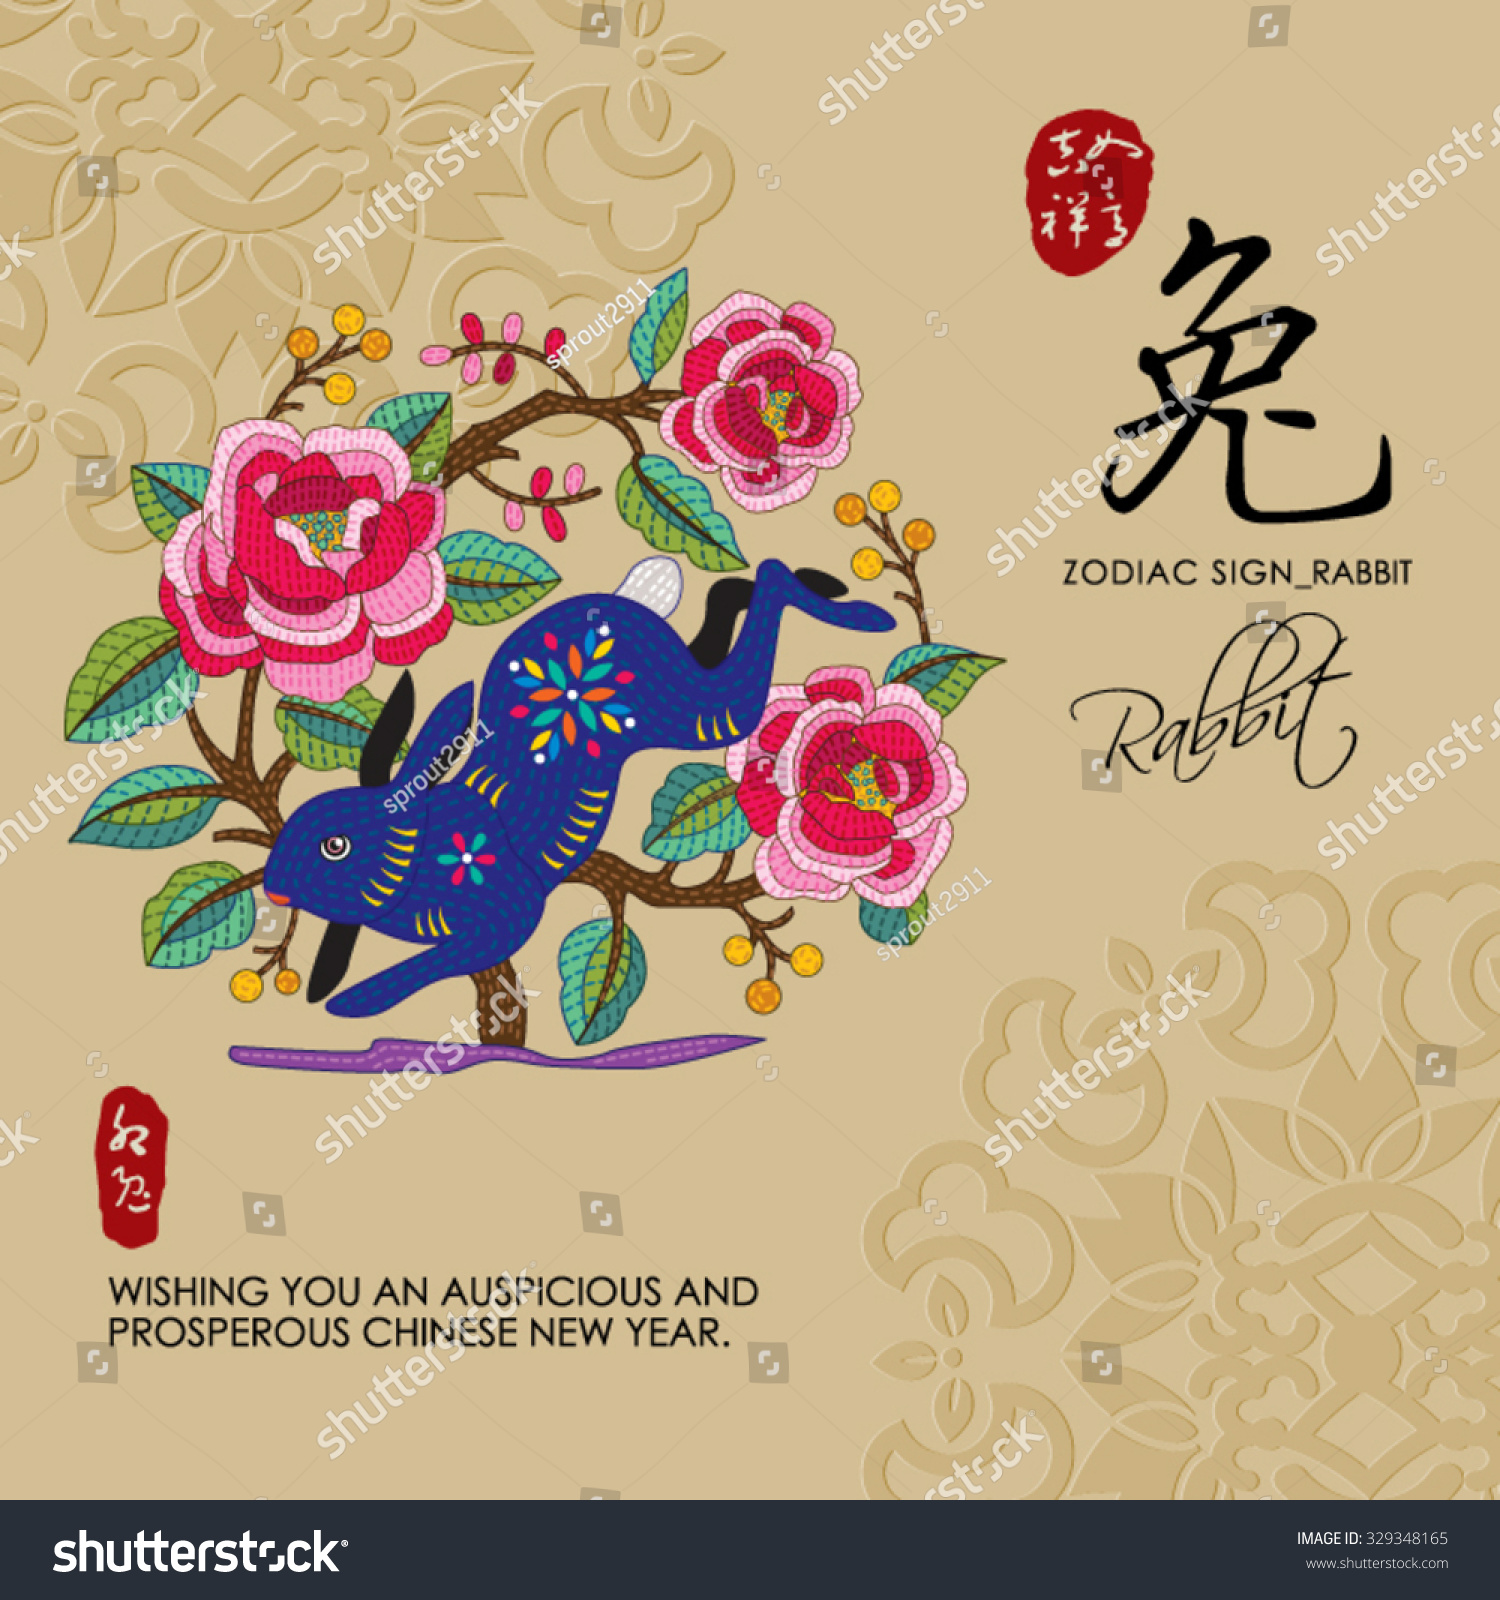 12 chinese zodiac signs rabbit chinese stock vector